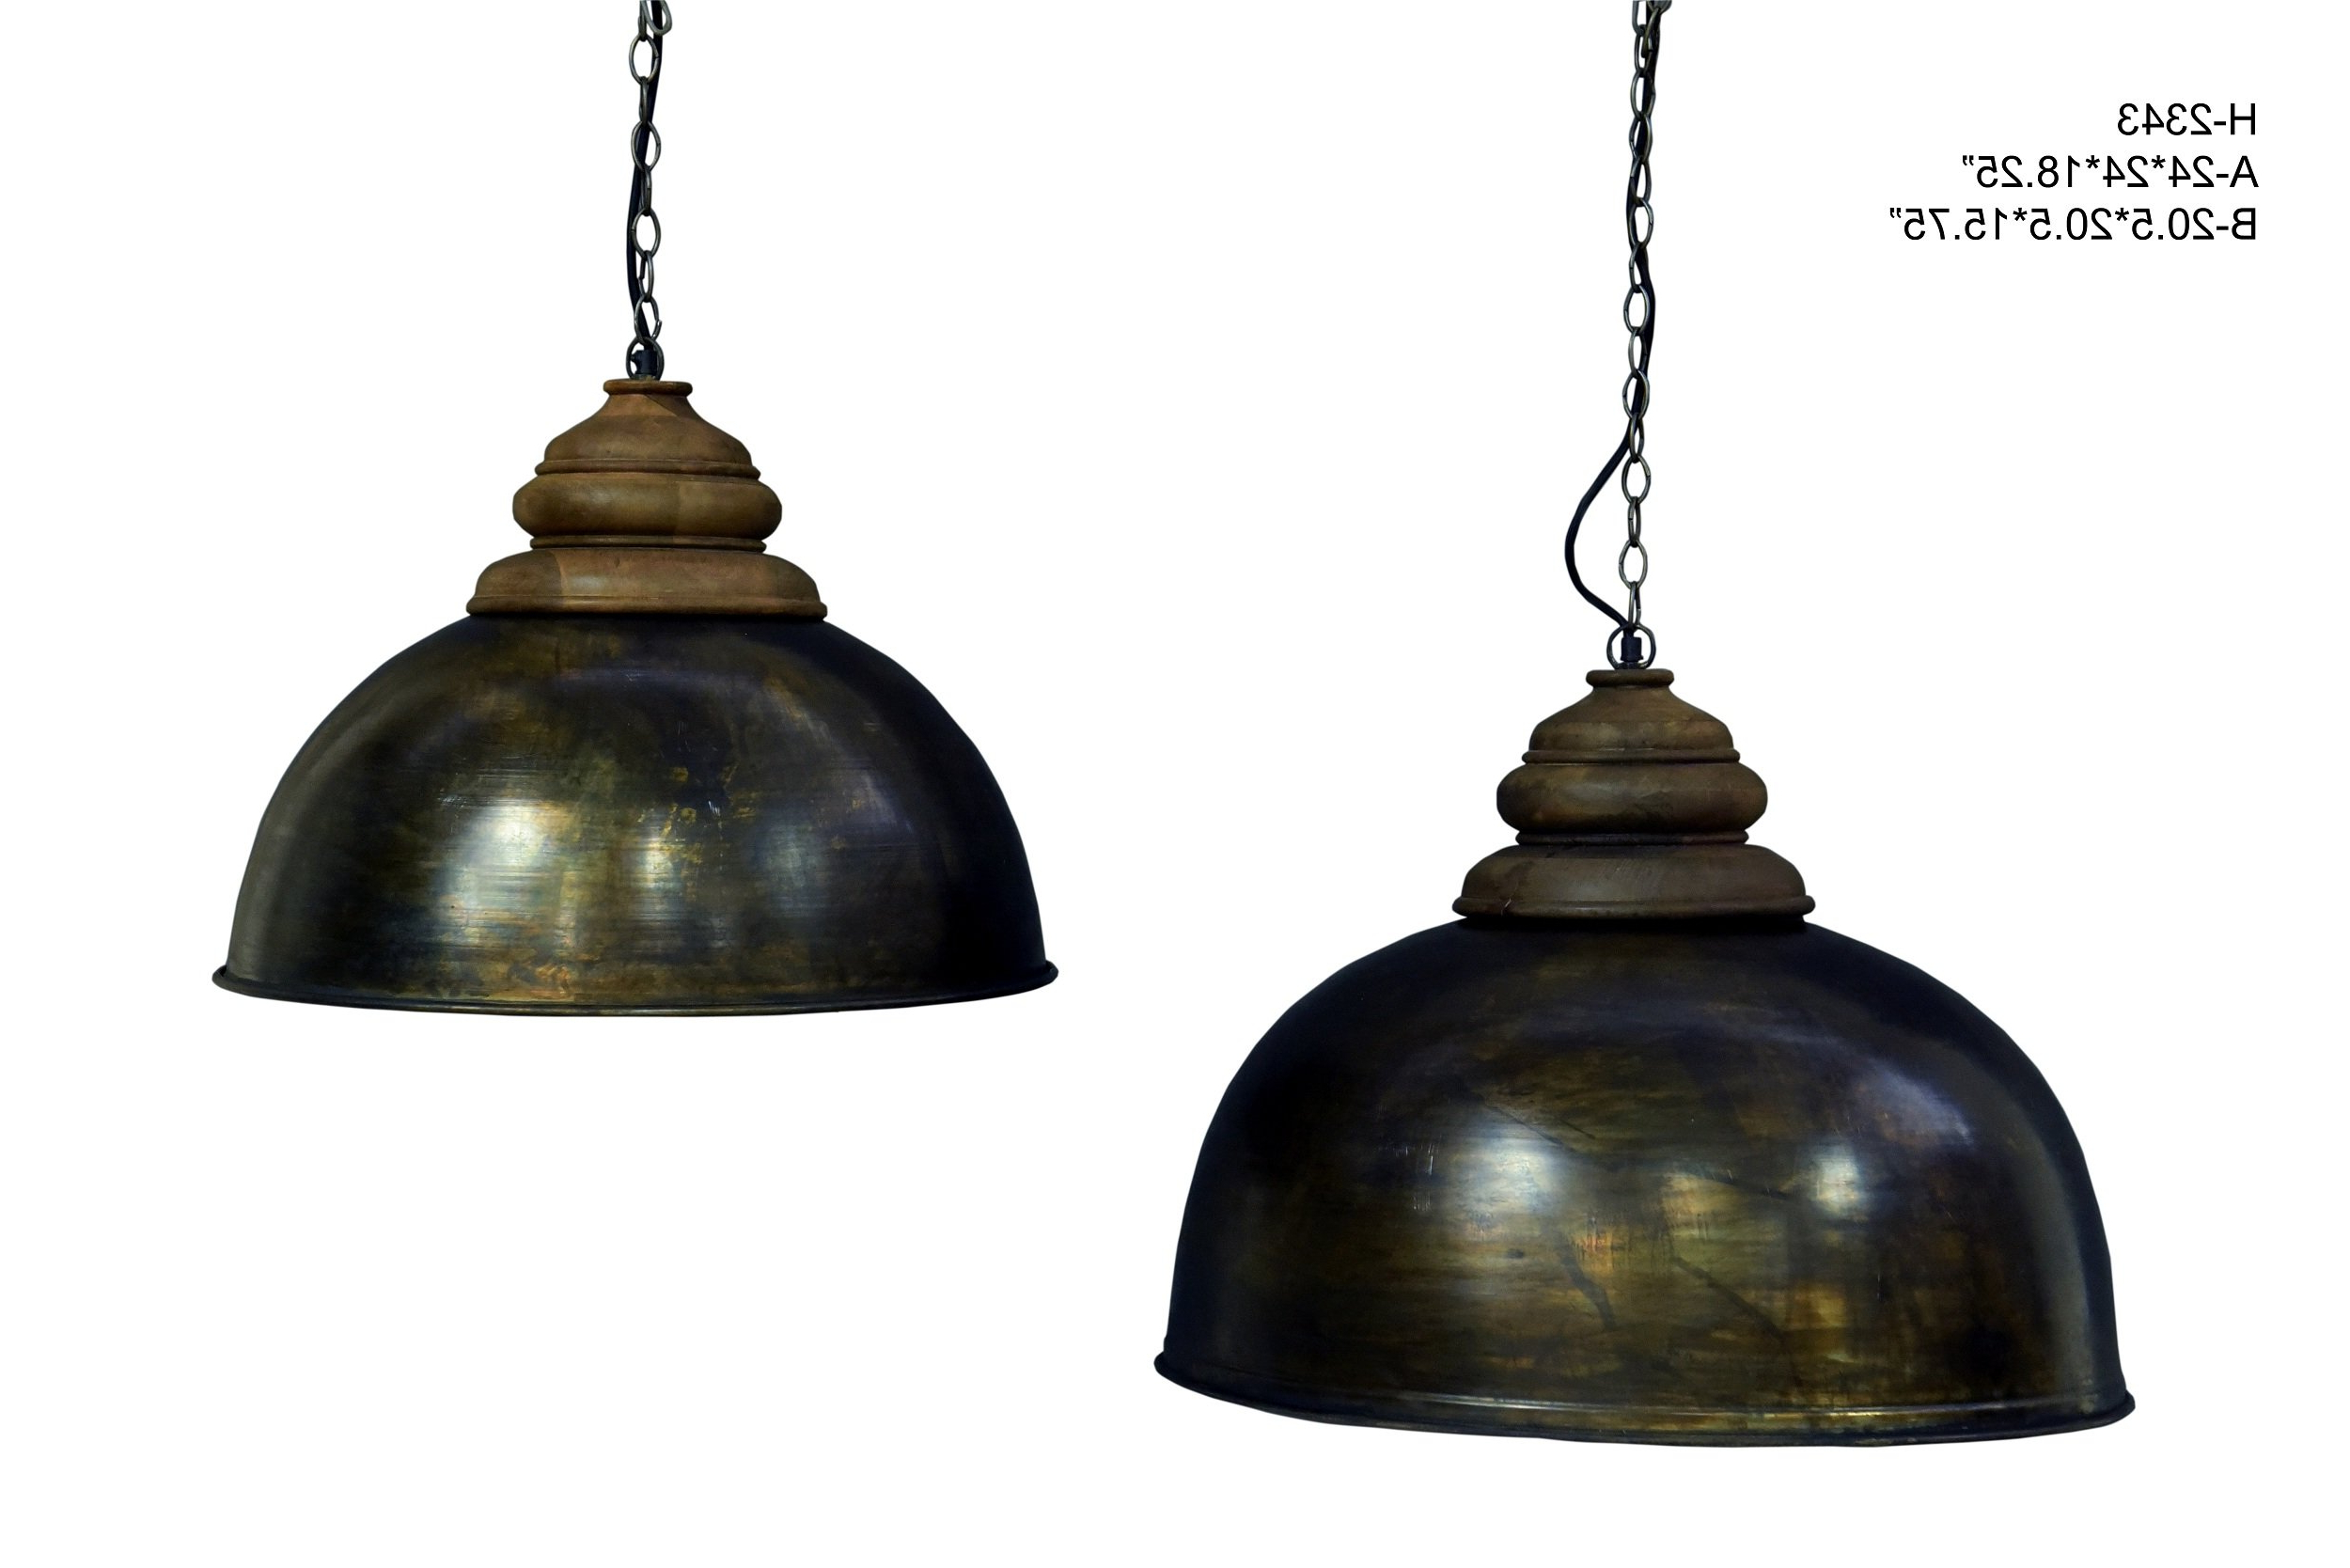 Pirro 1 Light Single Dome Pendant Within Most Popular Monadnock 1 Light Single Dome Pendants (View 14 of 20)